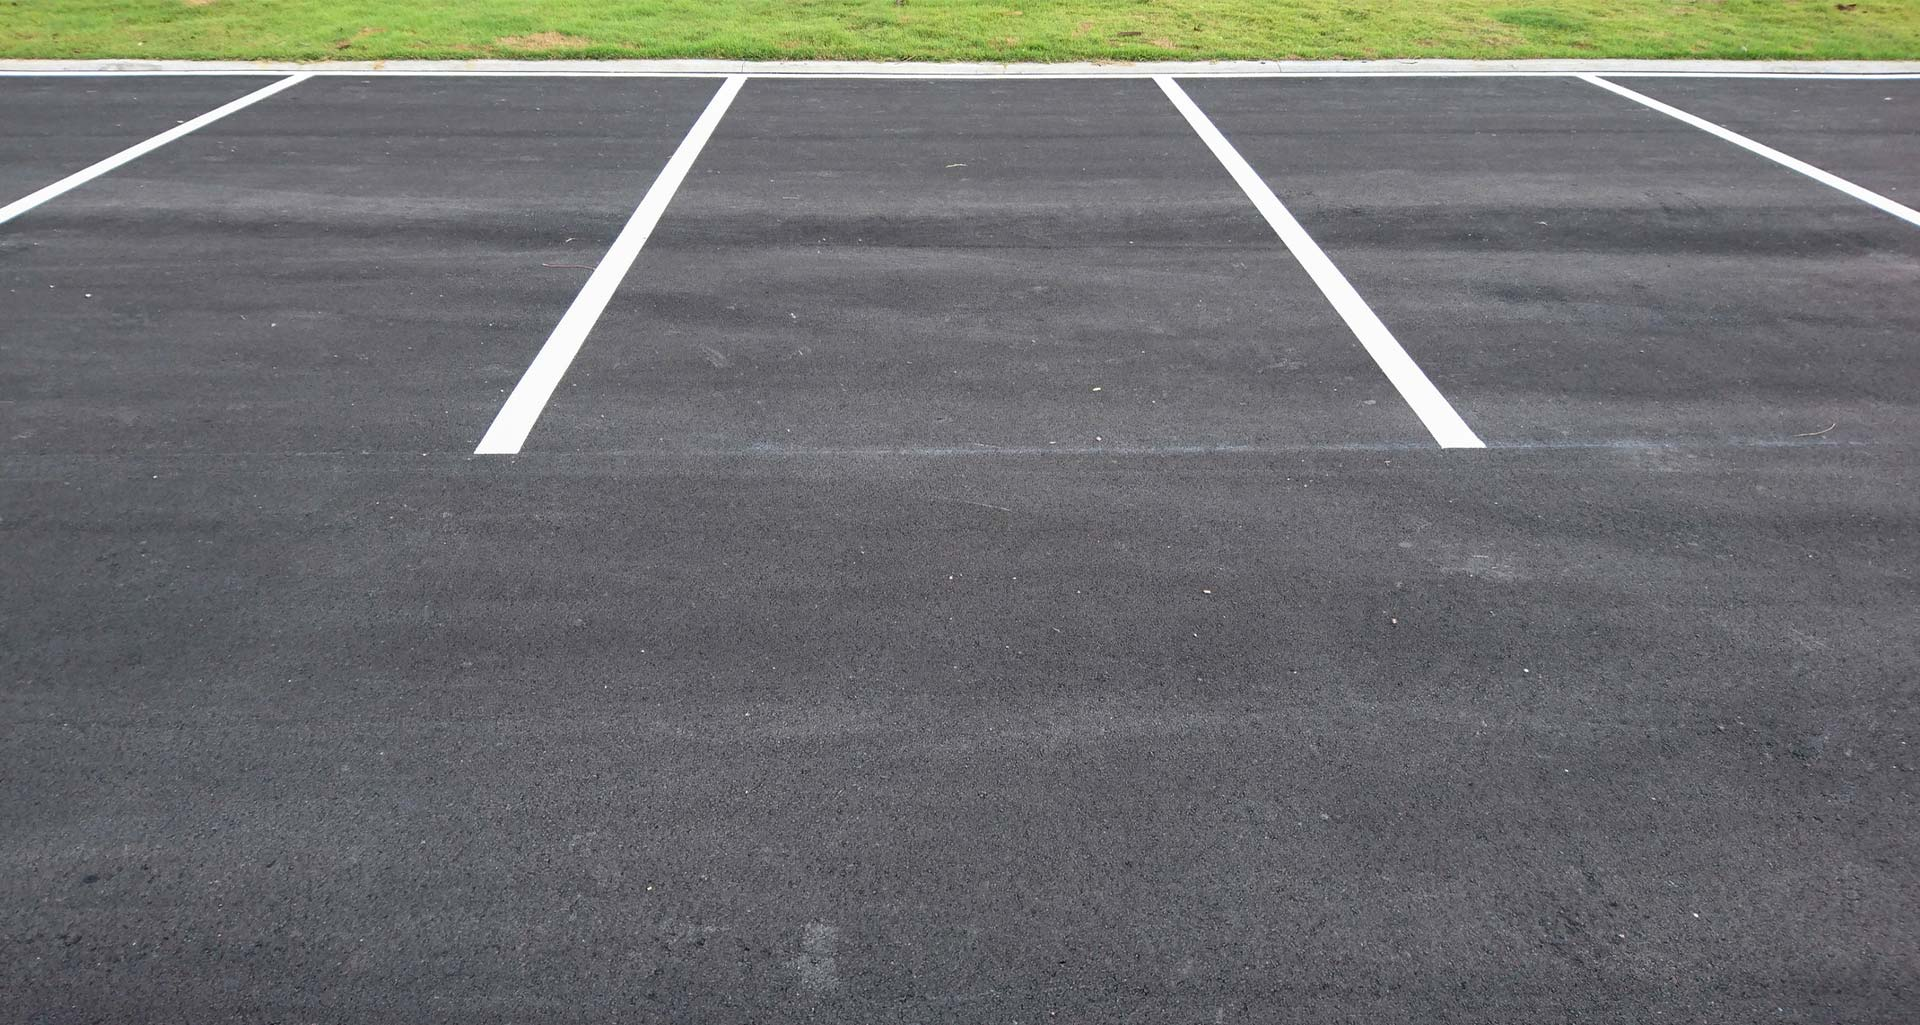 A row of empty parking spaces.